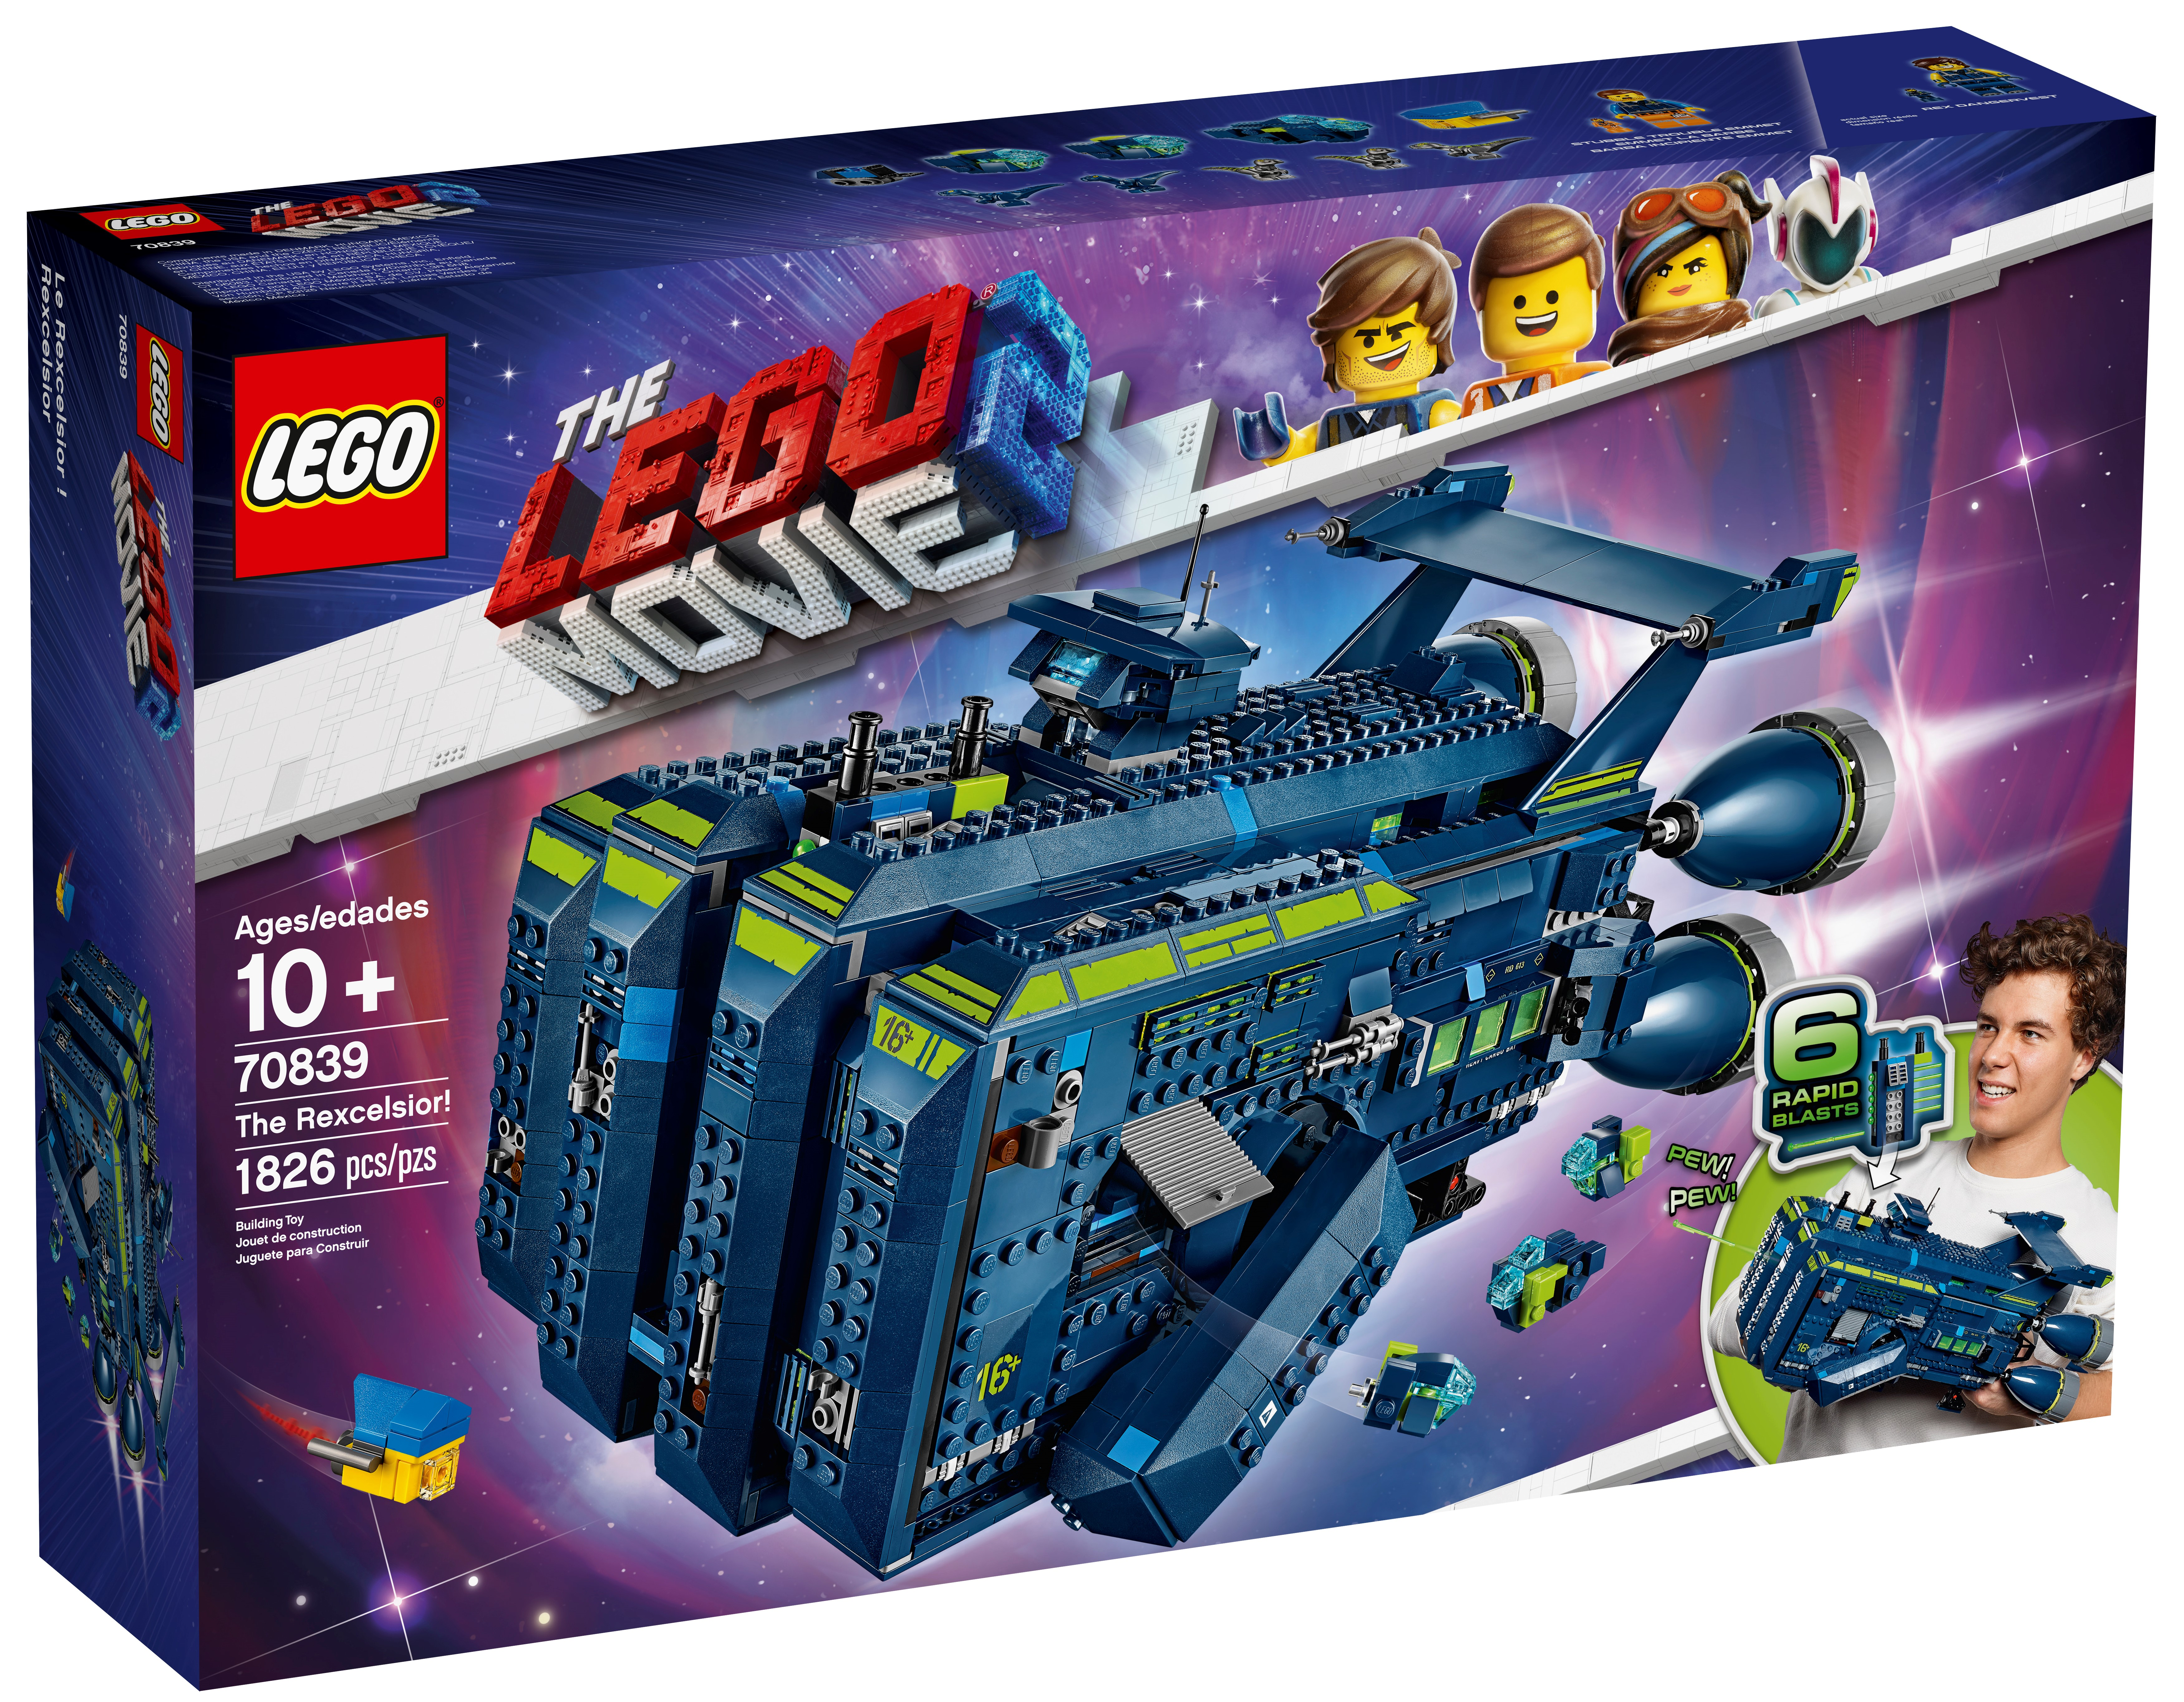 LEGO THE LEGO MOVIE 2 Rex/'s Rexplorer Spaceship Toy with Dinosaur Figures 1172 Pieces 70835 Building Kit Discontinued by Manufacturer